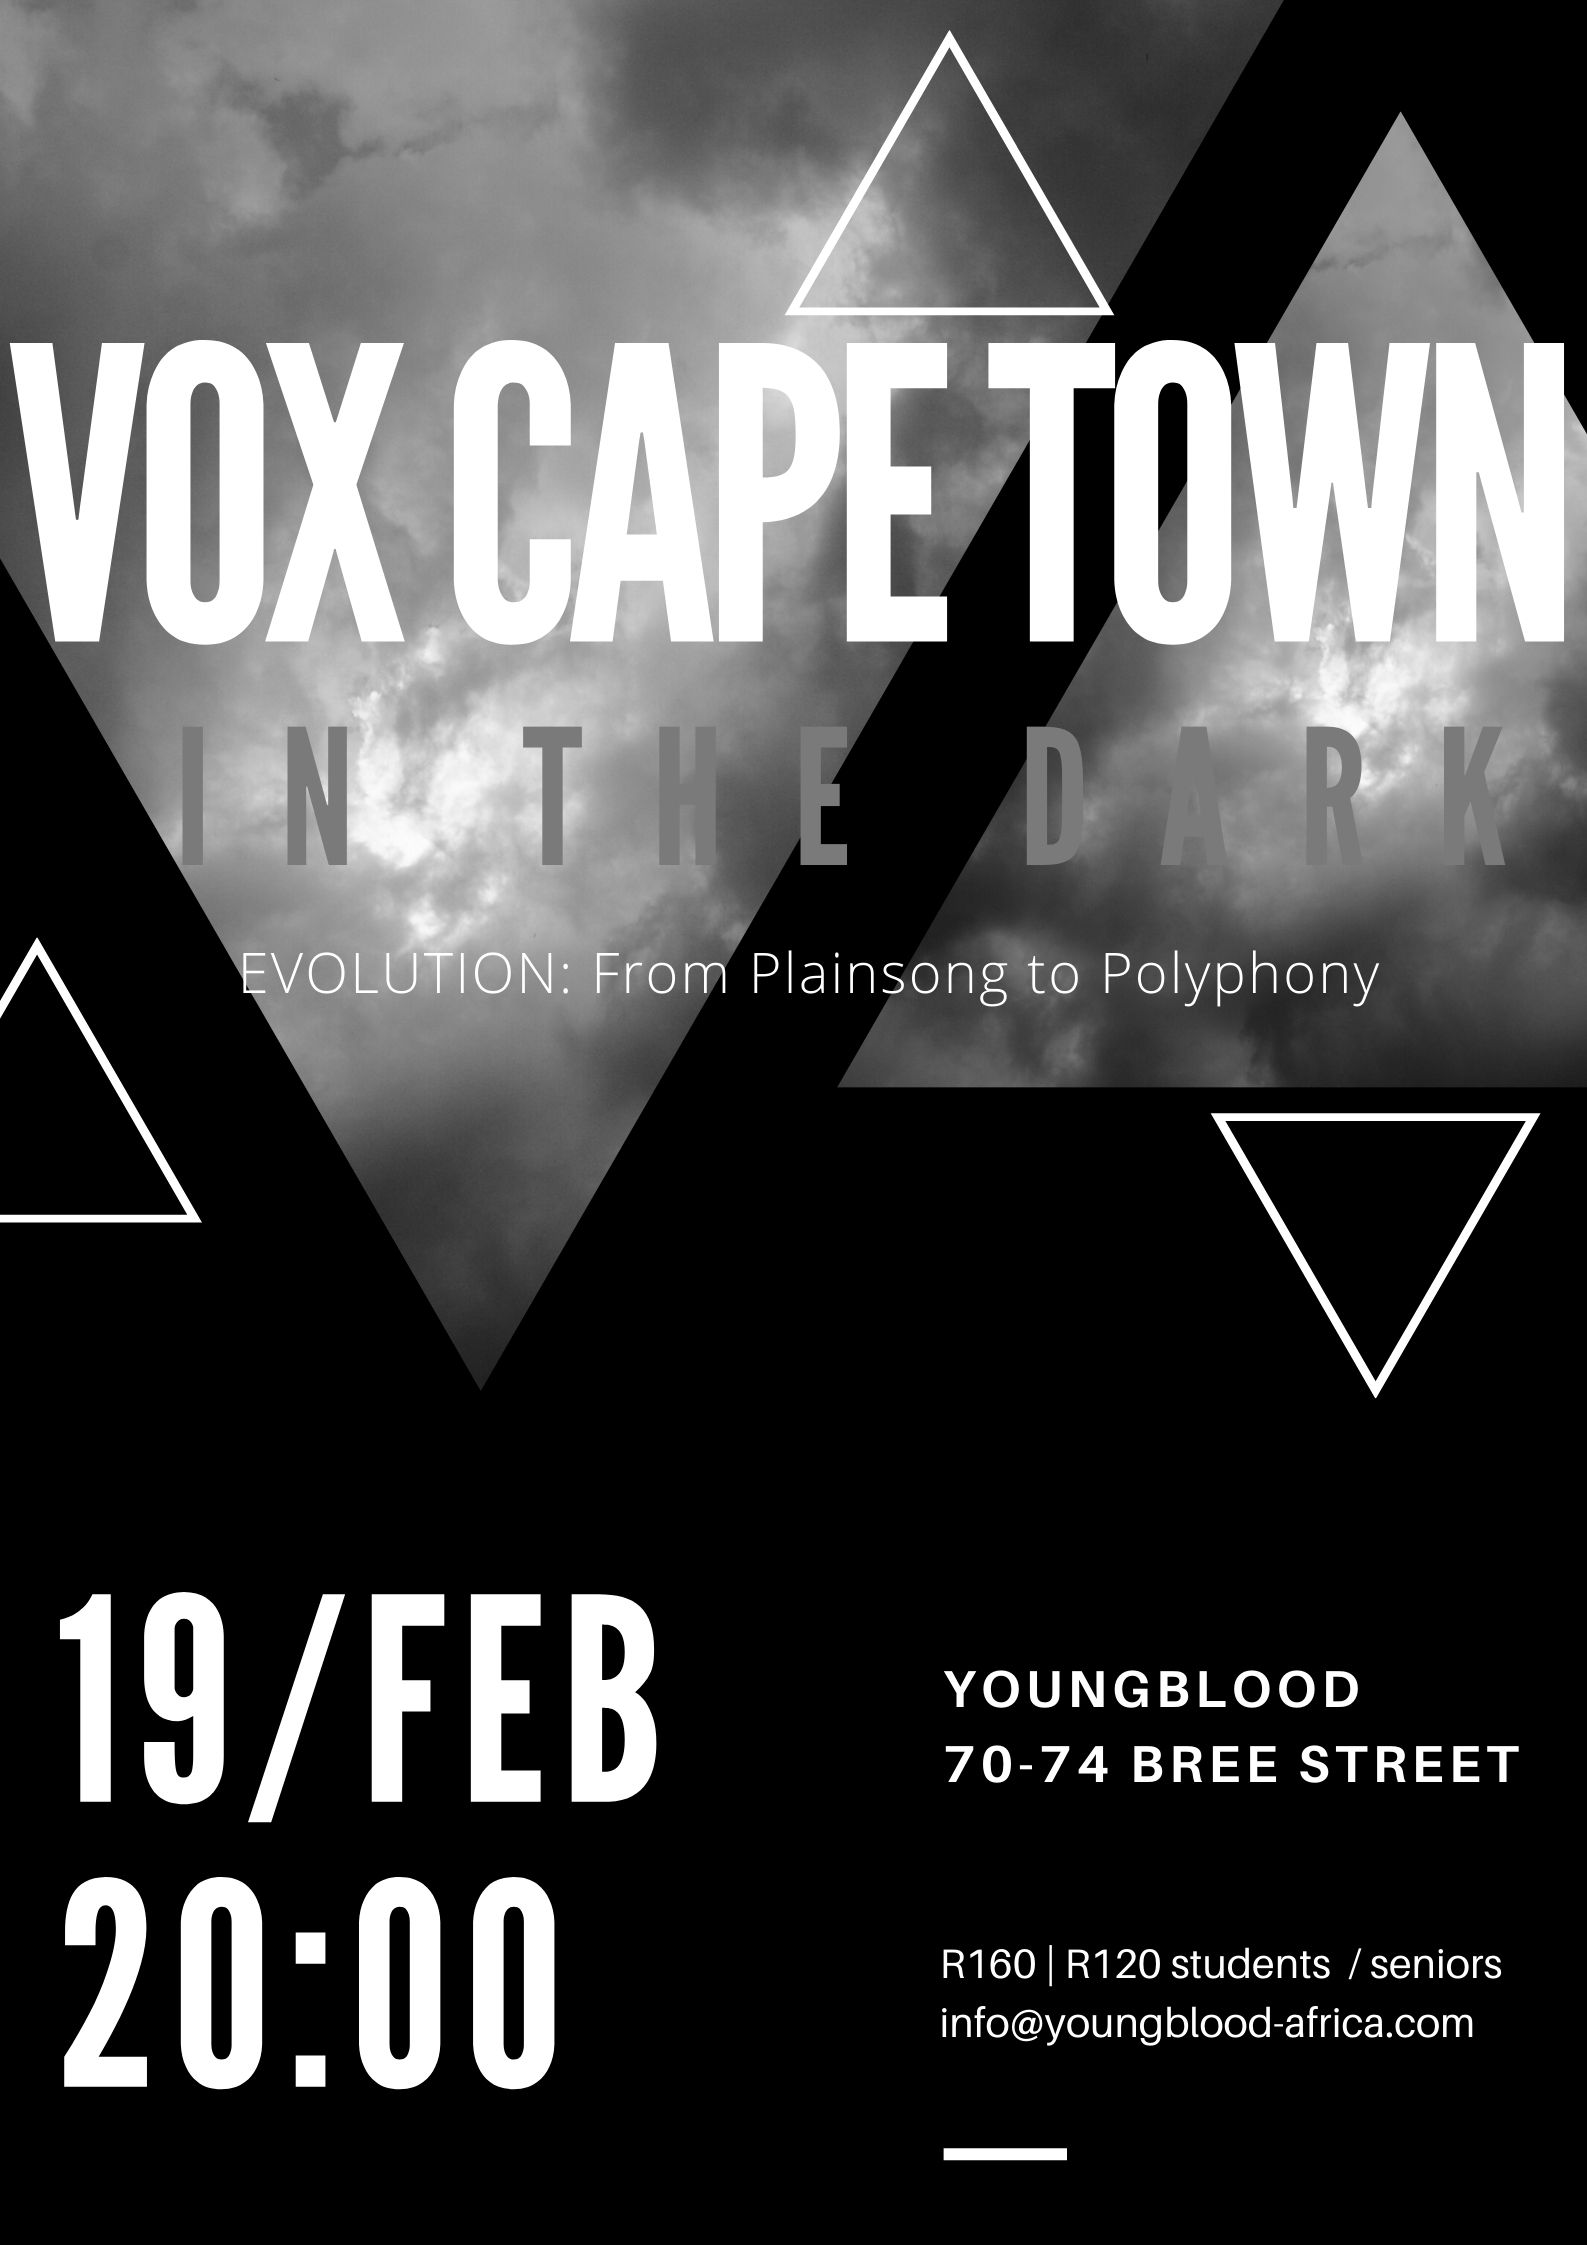 In The Dark : Vox Cape Town I Evolution - From Plainsong to Polyphony